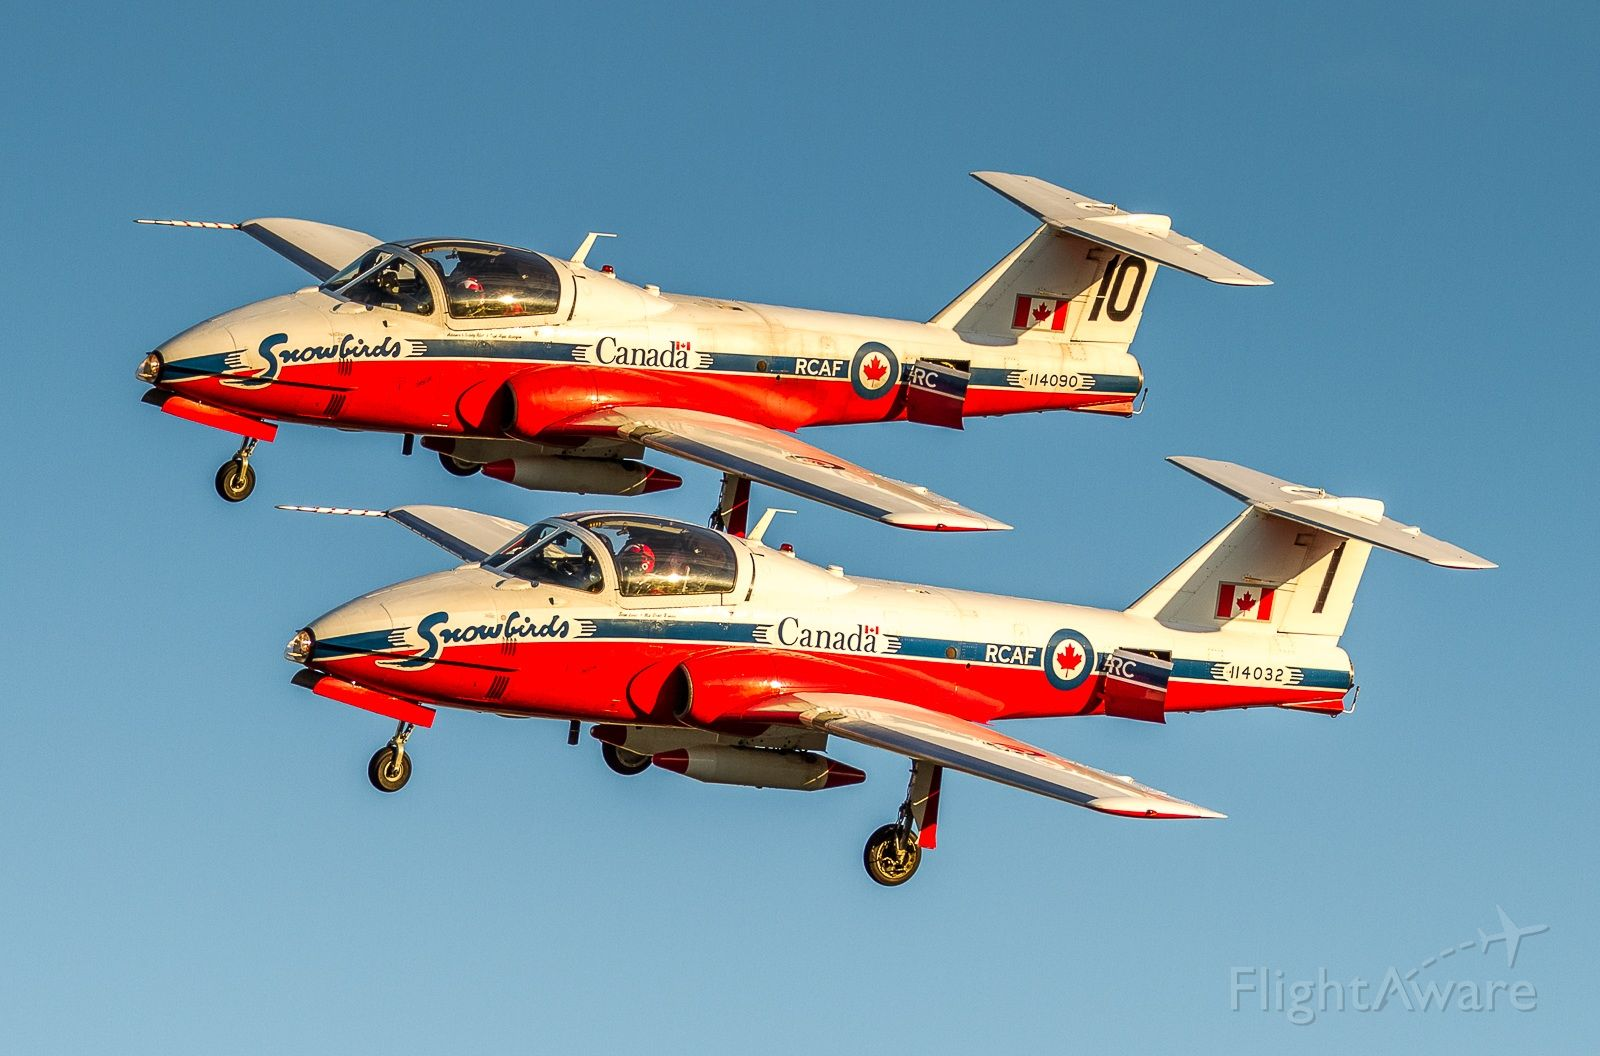 Canadair CL-41 Tutor (11-4032) - On the occasion of the Toronto Raptors winning the NBA title and subsequent parade, the Snowbirds did a flyby. Here they arrive at YYZ the night before in some glorious light, coming in as they do in tight formation.